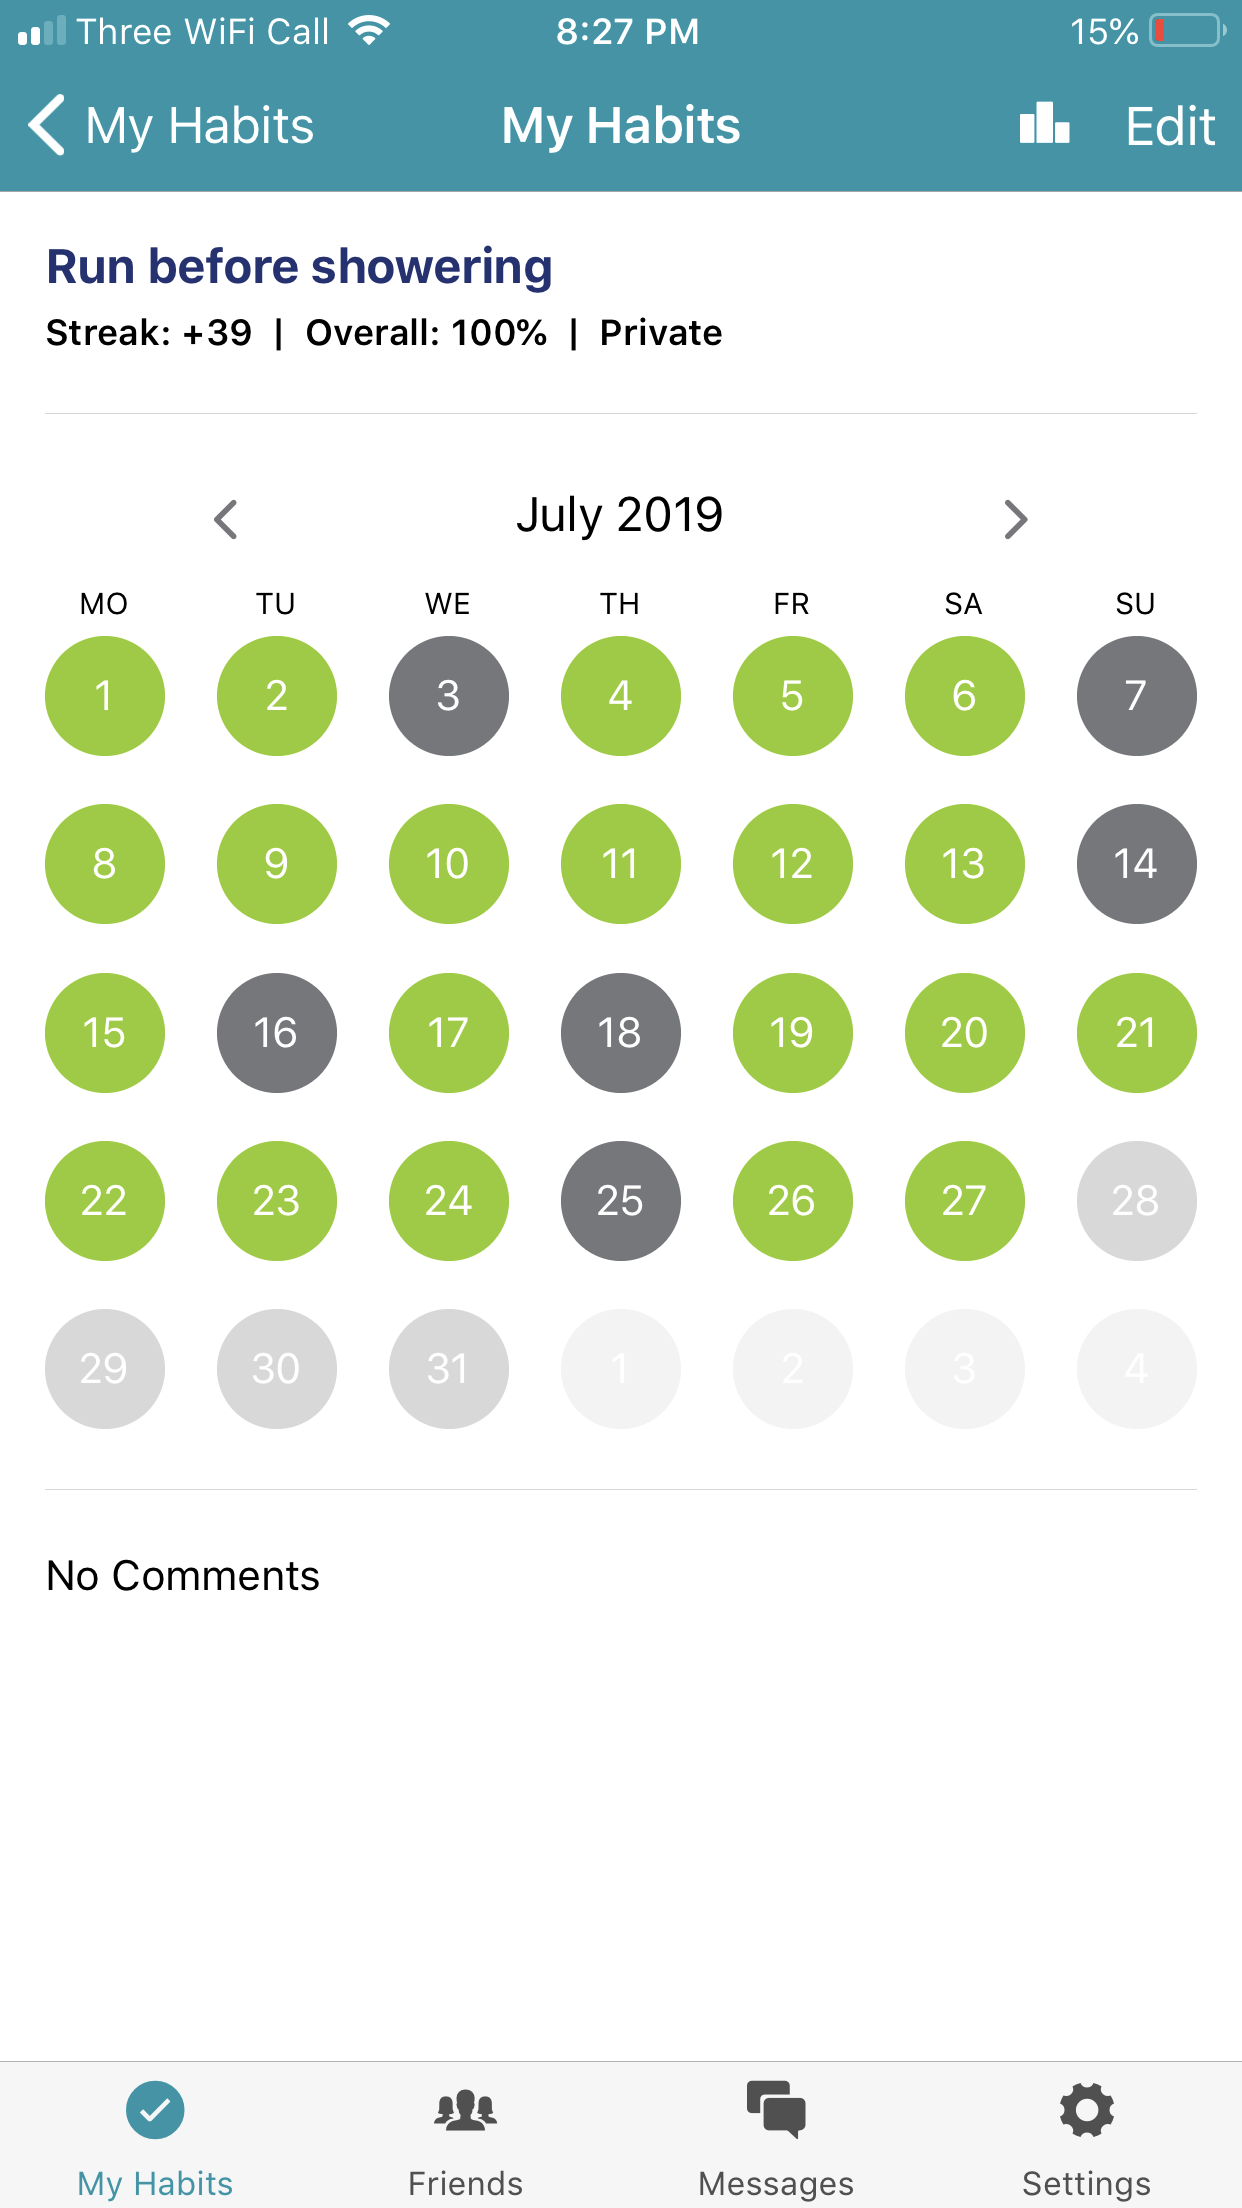 The grey circles are the days that I didn't run but also didn't shower (so they still count as successful). If I were to shower without exercising, I would have to colour it RED! Ah!